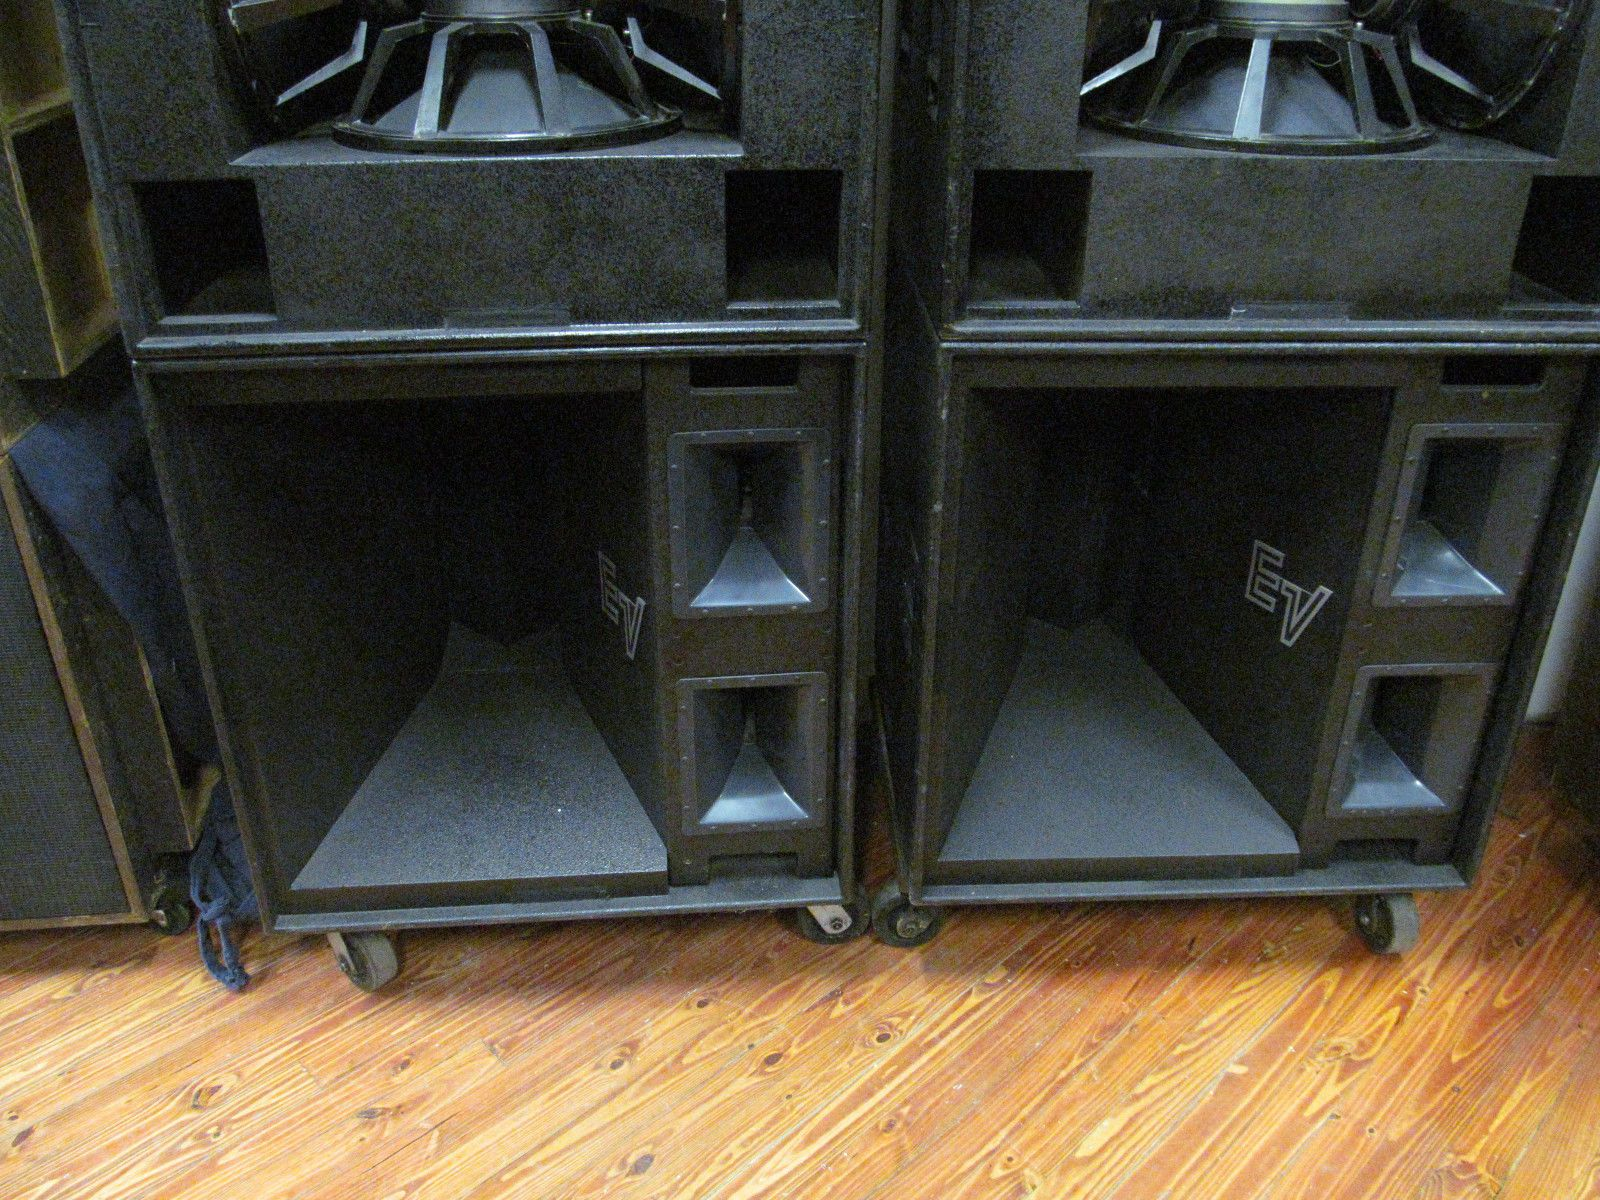 Electro Voice Racks And Stacks Legendary Mt4 Sound System Subs